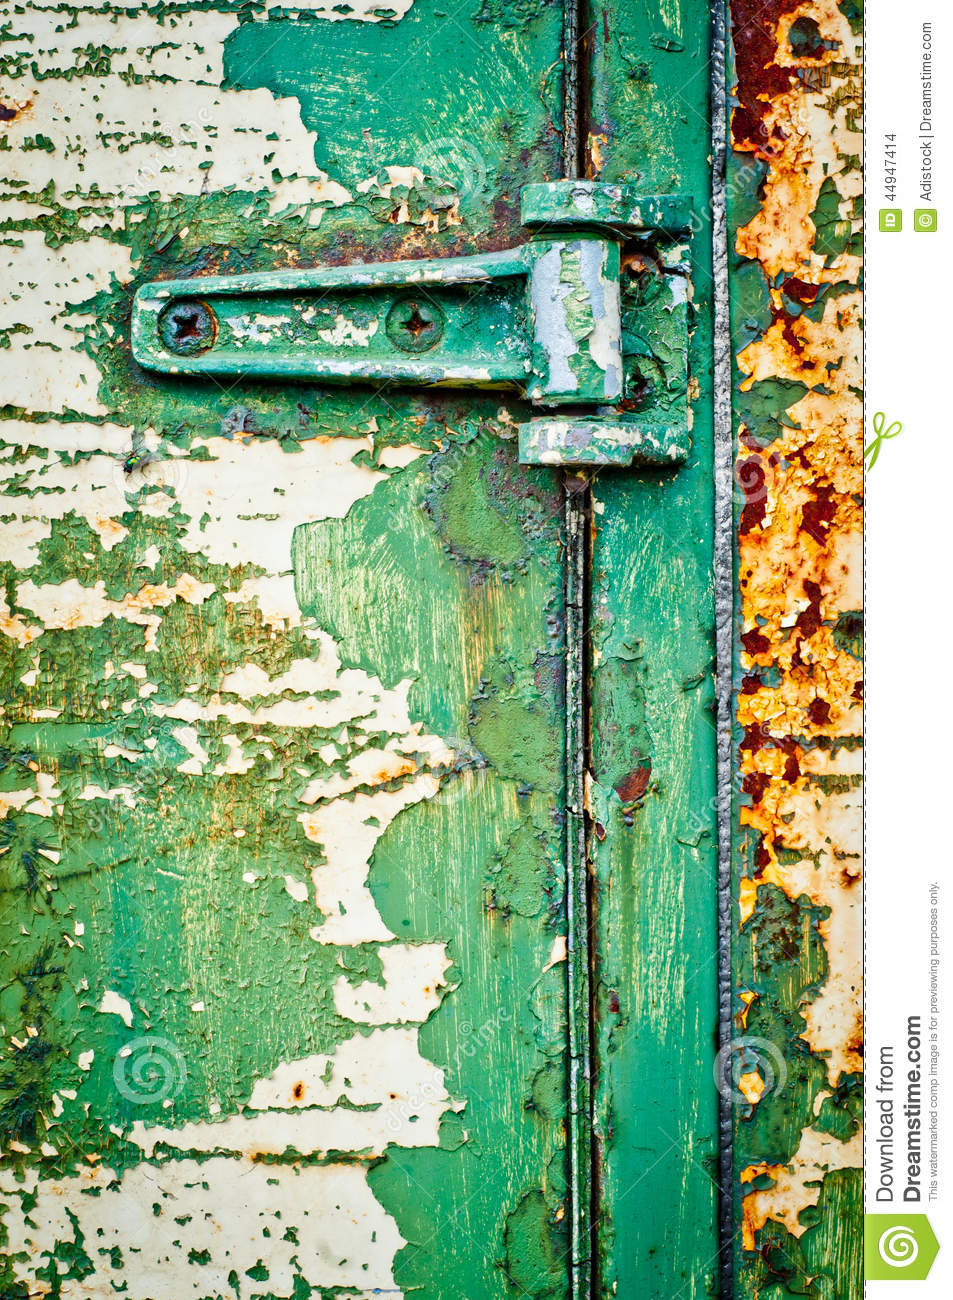 The Old Door With Cracked Paint Background Closed With